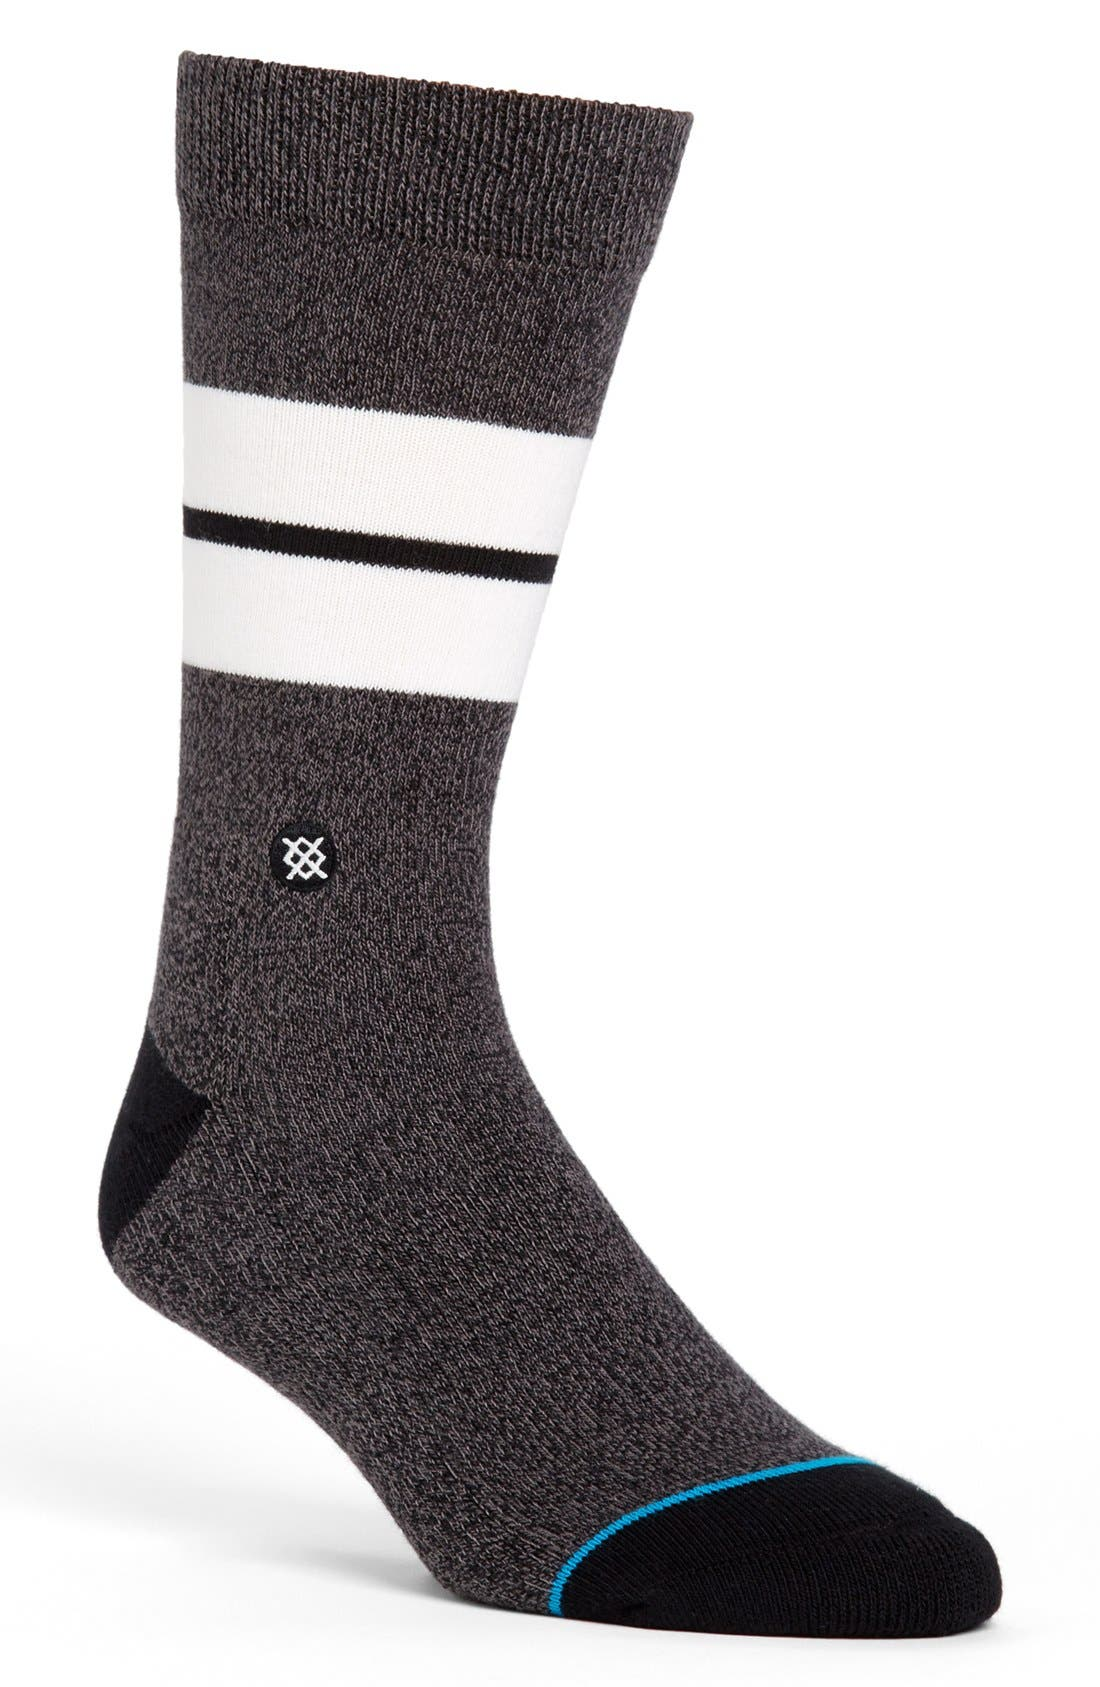 Alternate Image 1 Selected - Stance 'Sequoia' Socks